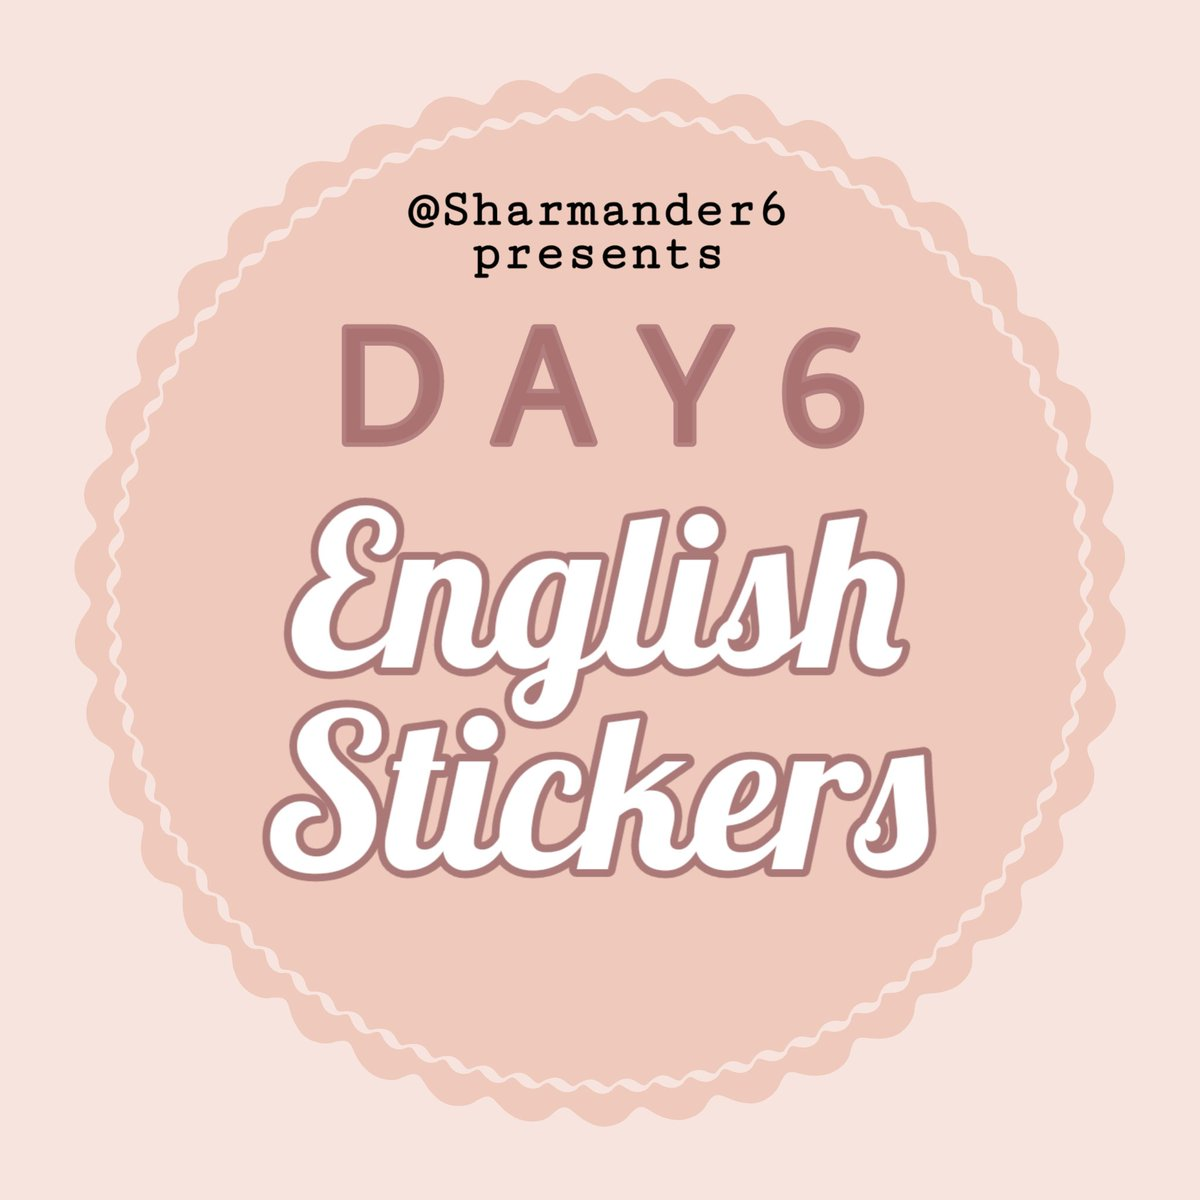 LET ME SAY HELLO! Long time no see dear My Days, Finally #Day6SayingsEnglishStickers is ready for order! (INA and Intl) 🍕  Item Details : Vinyl Doff-Laminated Kiss cut Size A5 sticker sheet  For INA order pls fill in http://tinyurl.com/Day6StickerShar  Questions thru DM pls :) THANK YOU!